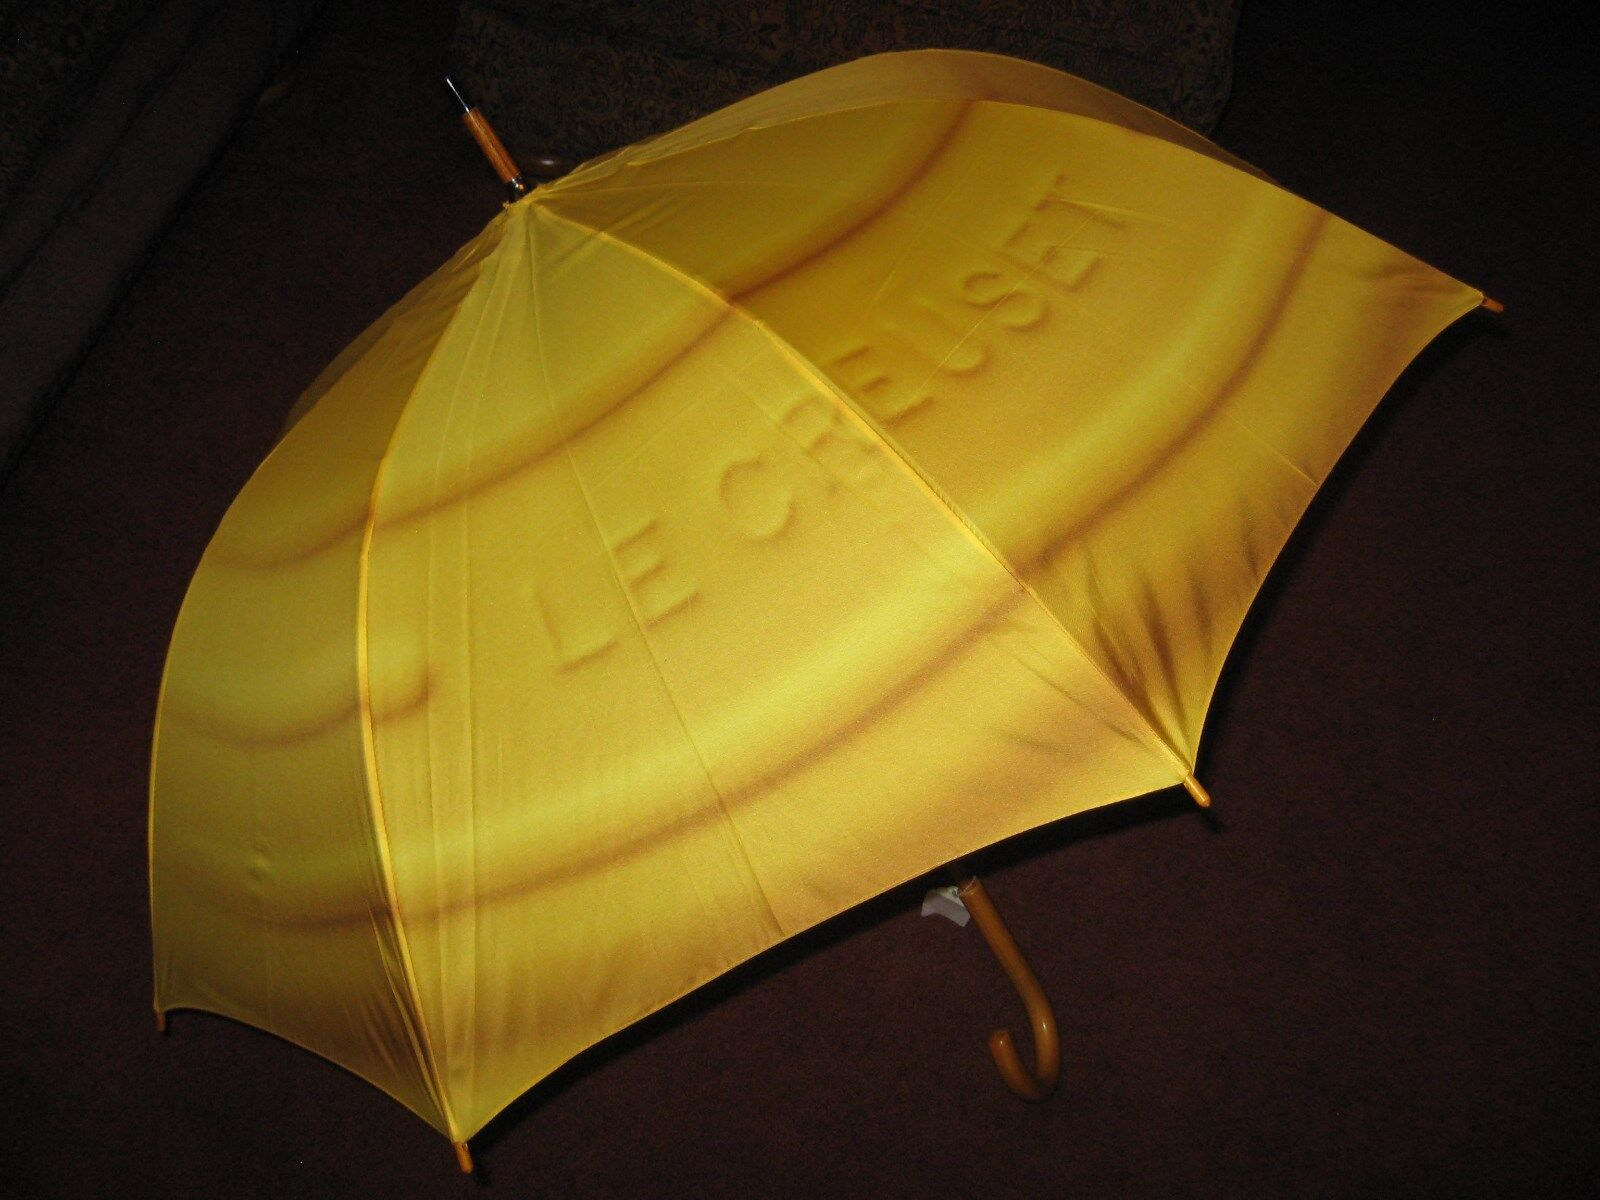 Le Creuset Extremely Limited Edition Umbrella   37  x 54  Open   Soleil jaune